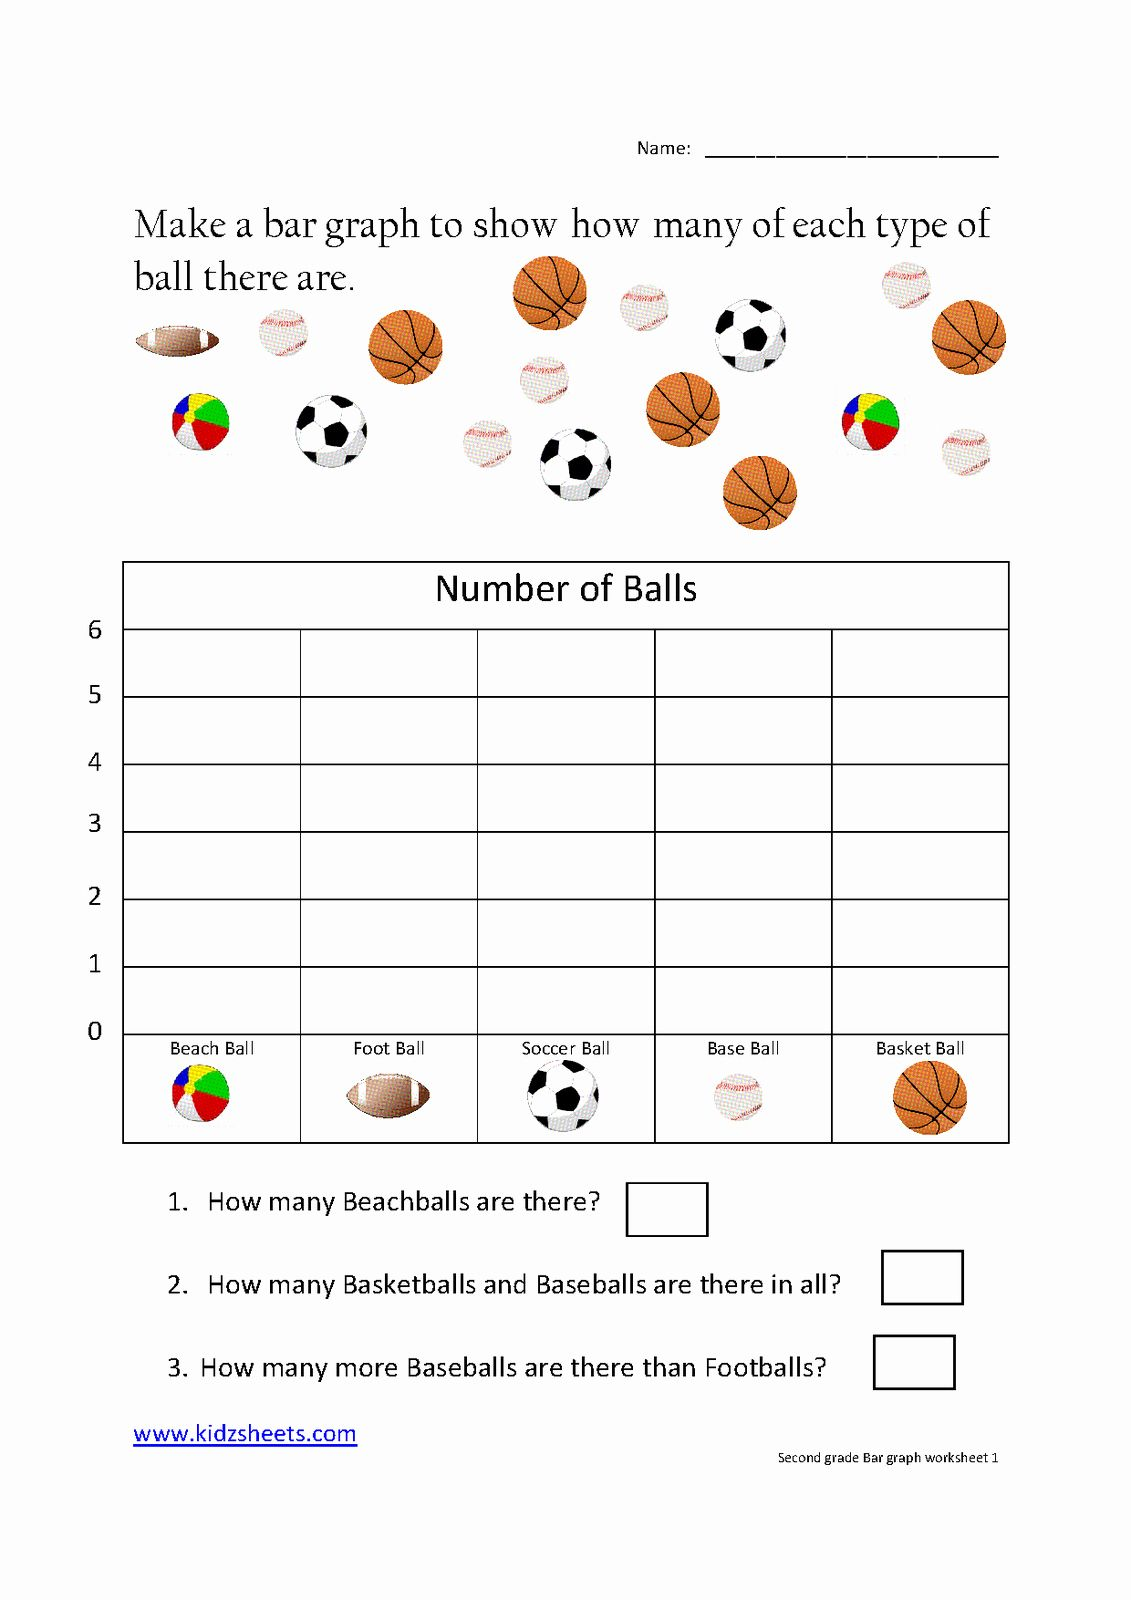 Free Bar Graph Worksheets Unique Kidz Worksheets Second